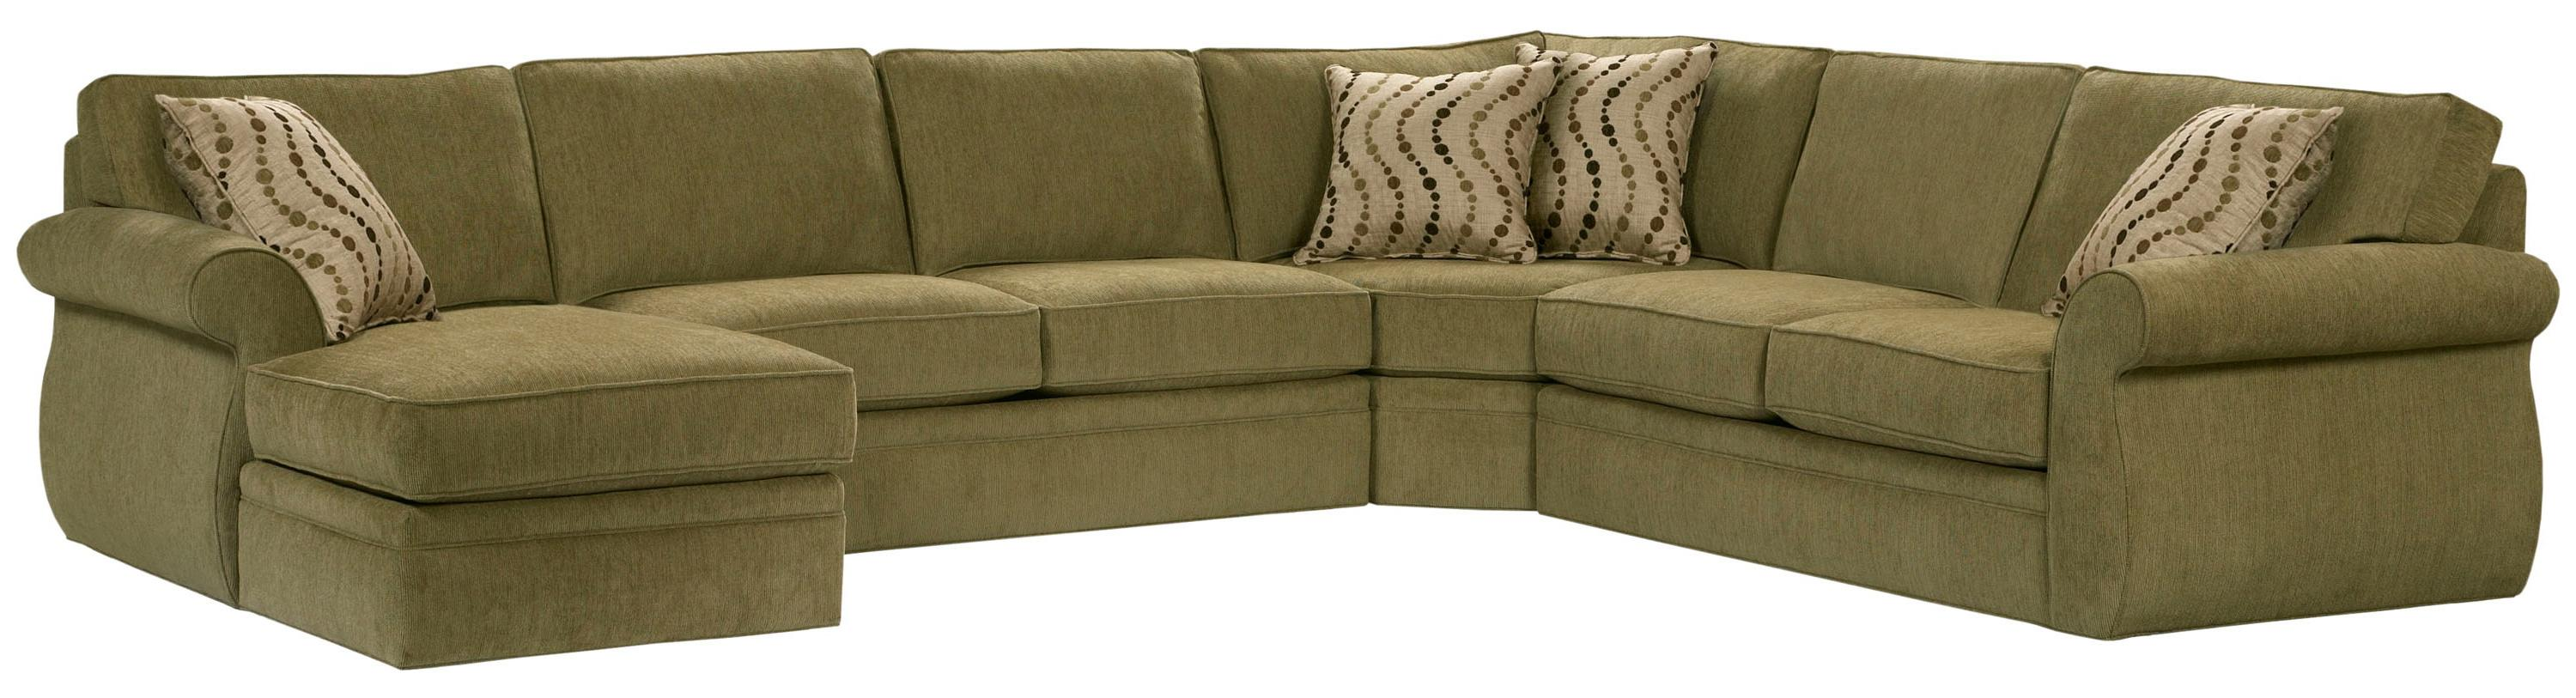 broyhill furniture veronica chaise